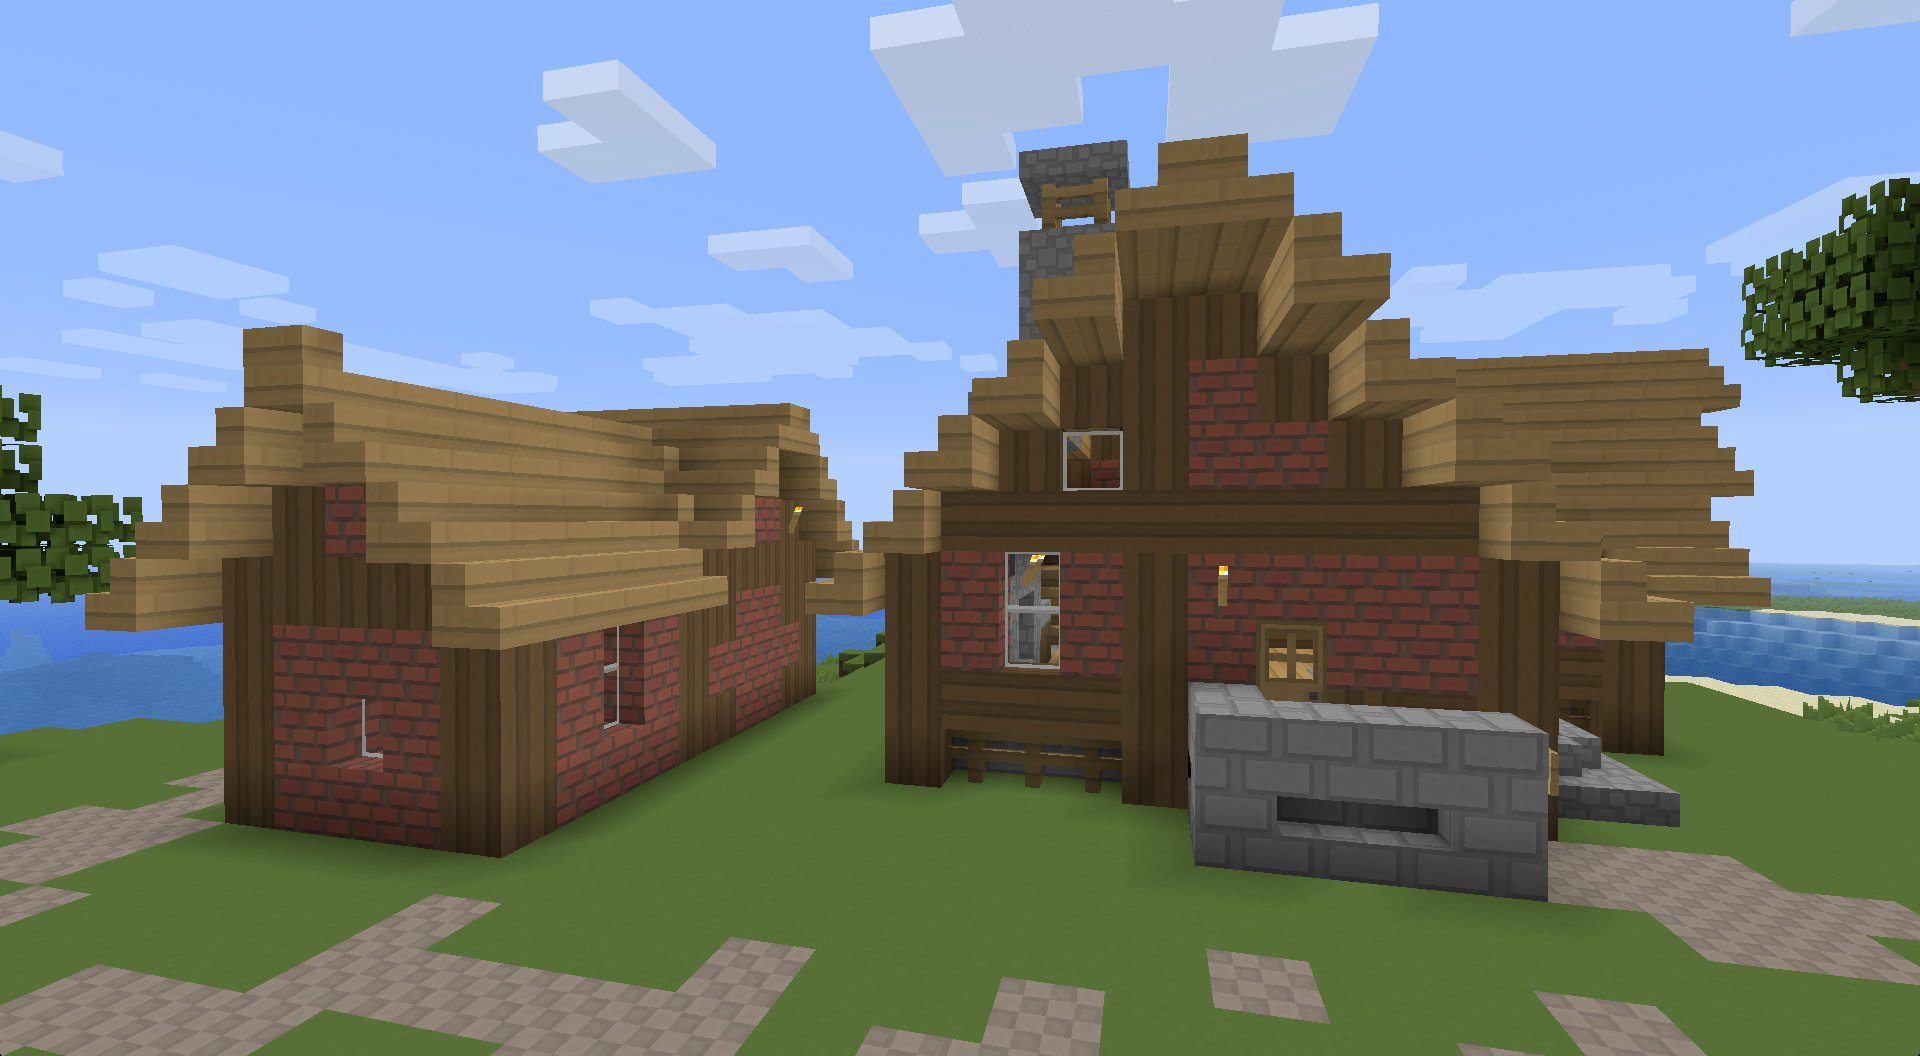 paper cut out minecraft texture packs